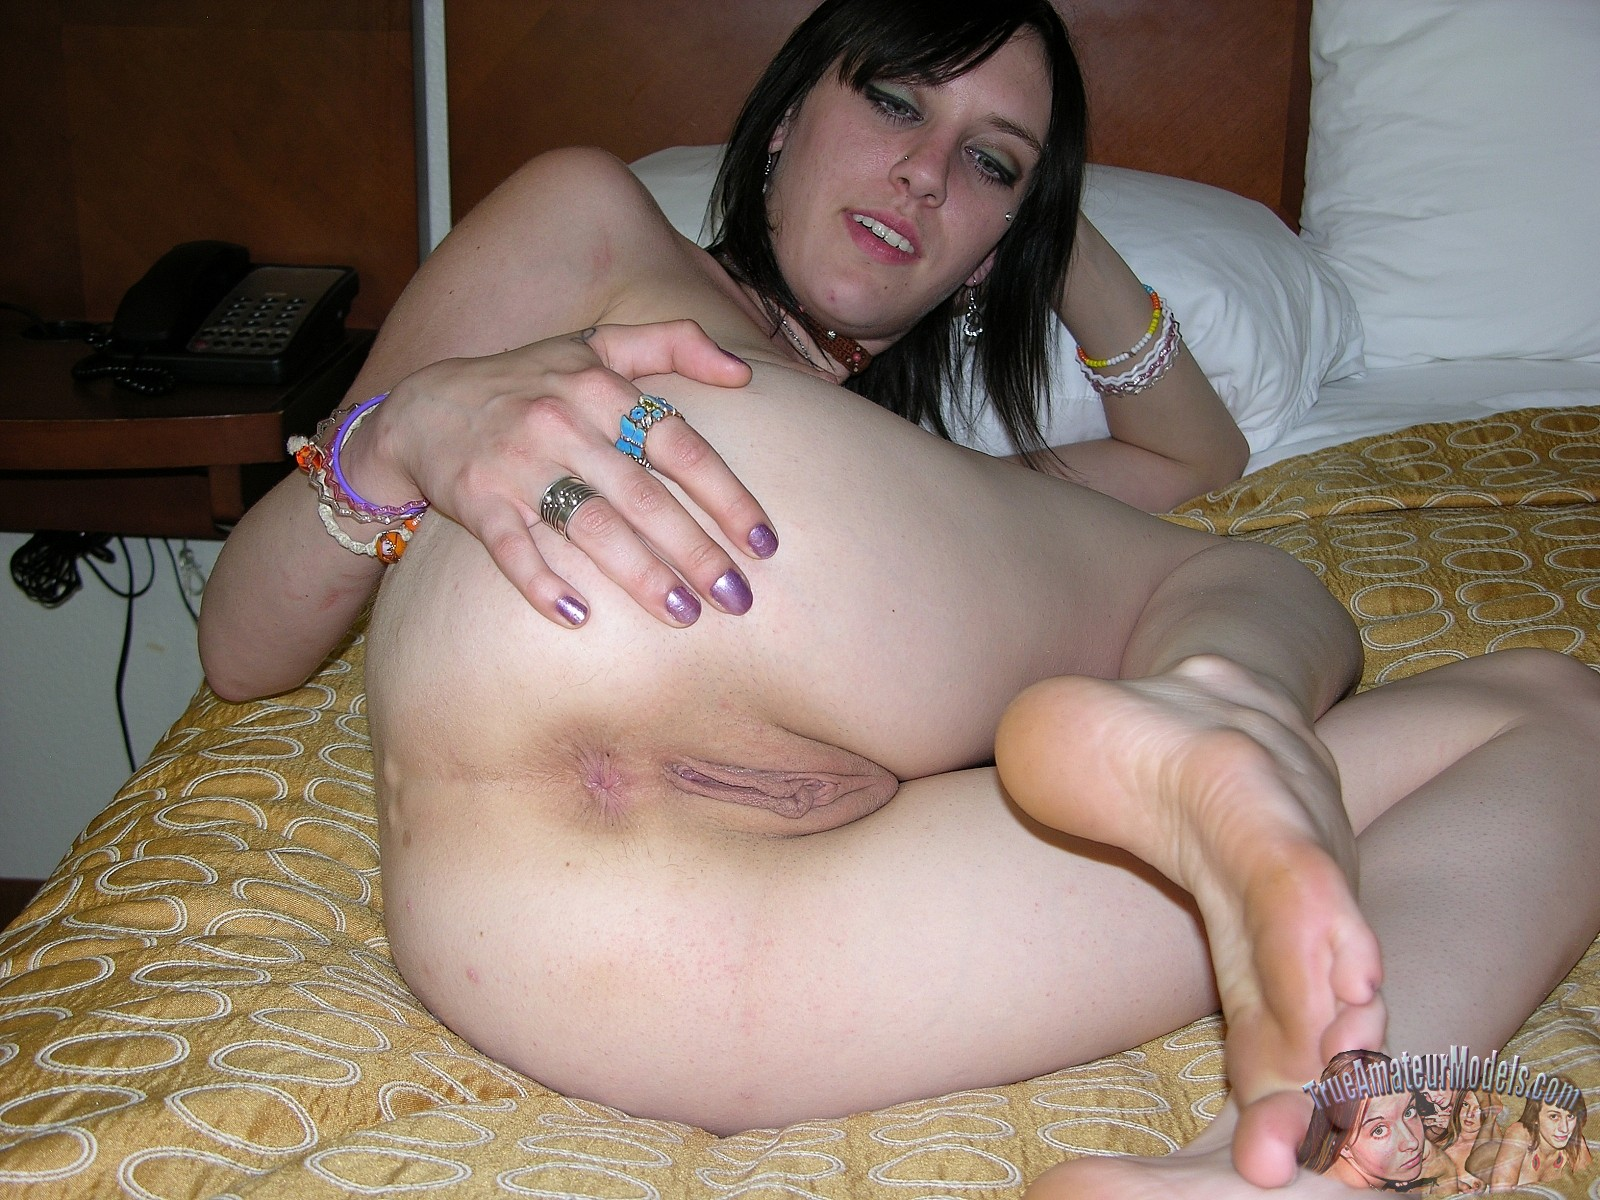 Nudist goth anus pictures, chubby girl porm